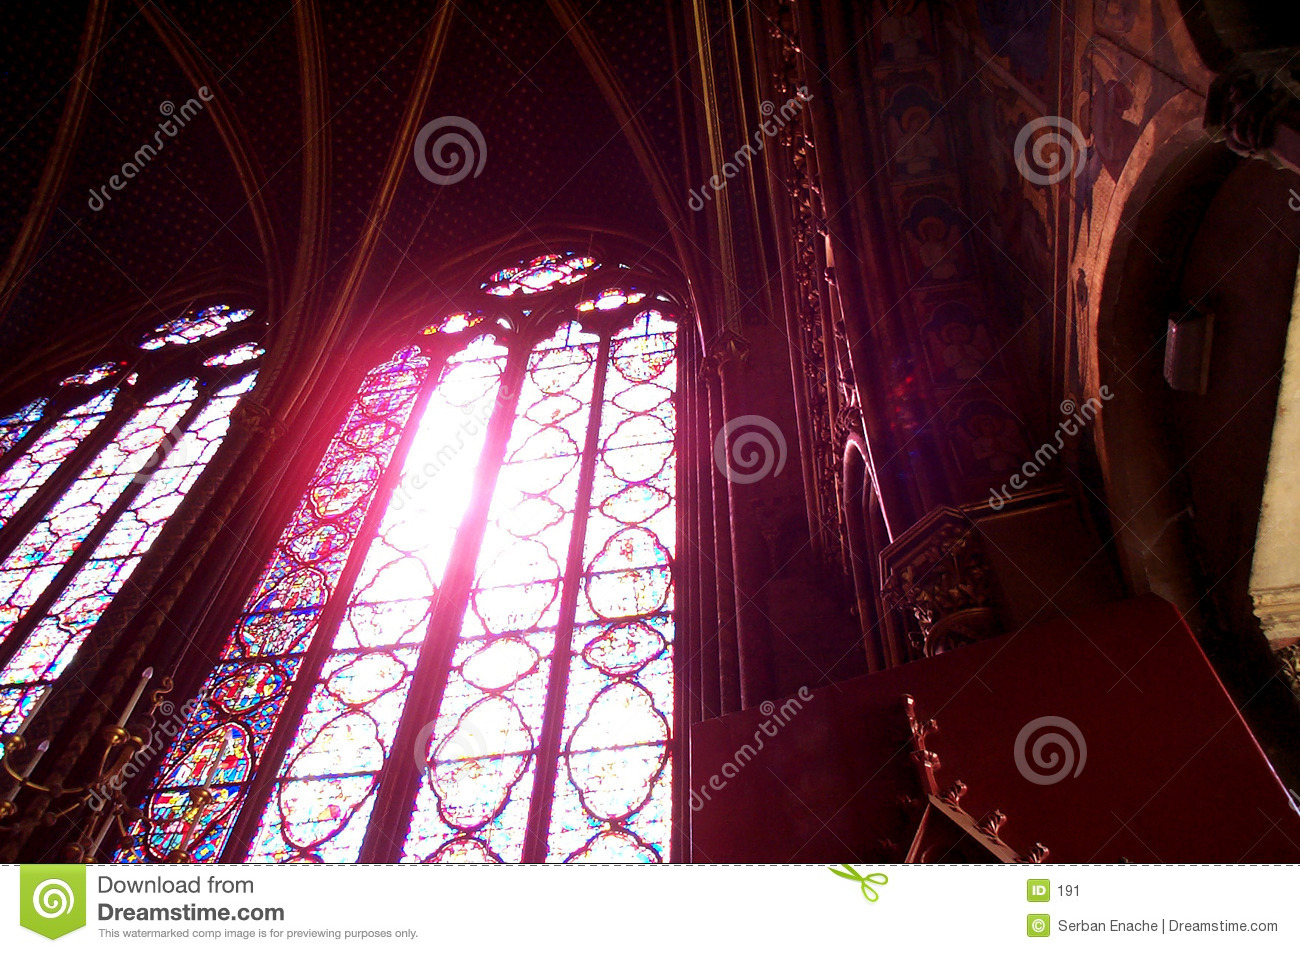 Stained glass in Saint Chapelle